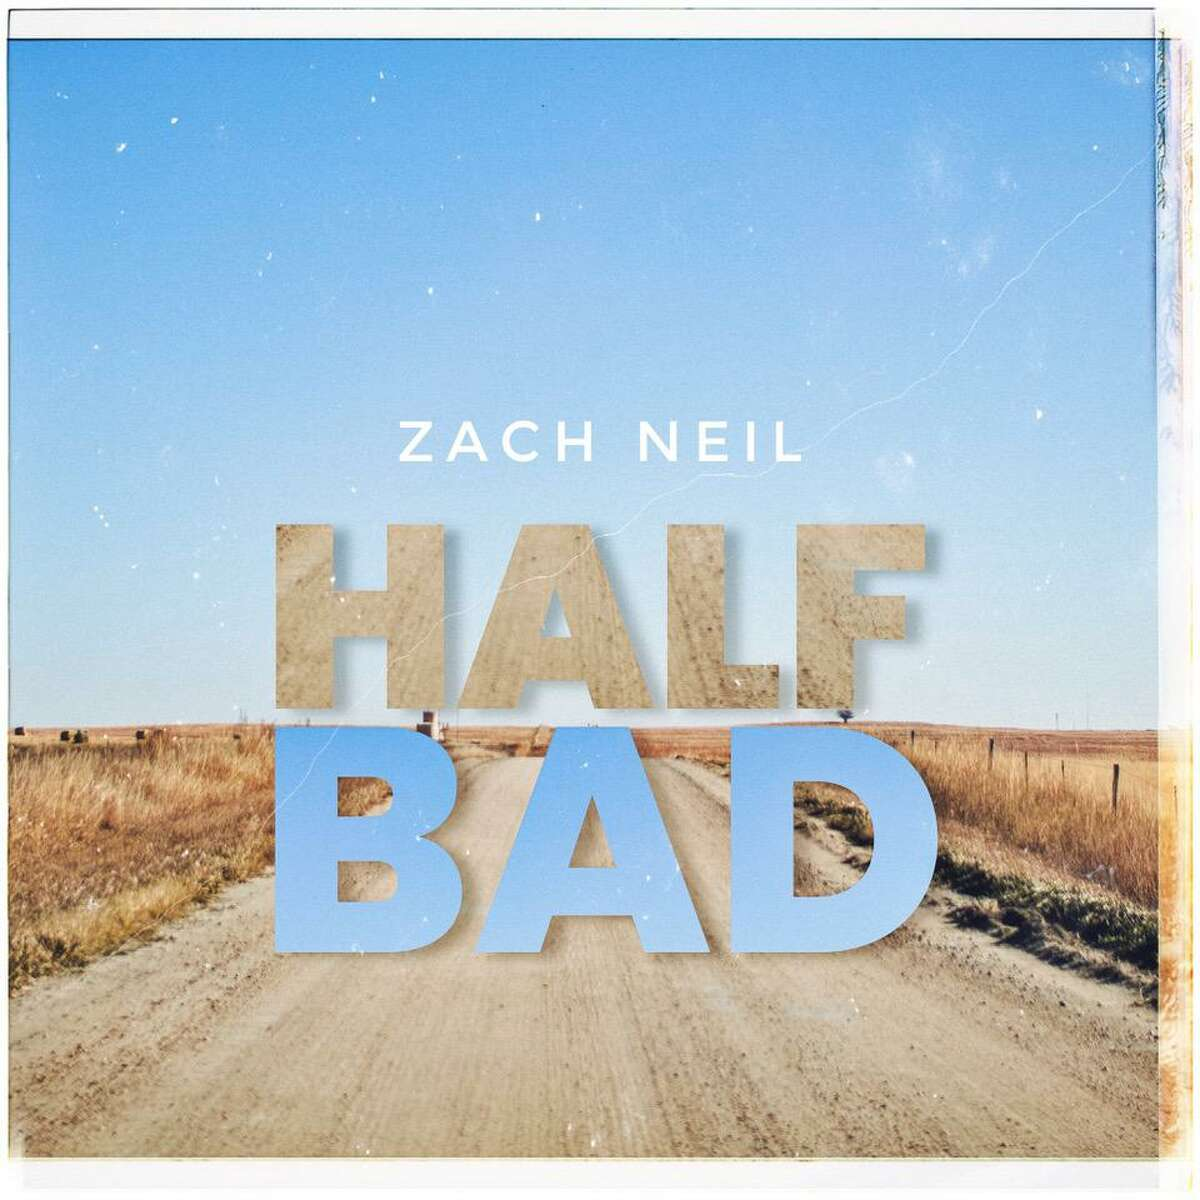 Country artist Zach Neil has released the playful new radio single, 'Half Bad' just in time for summer.